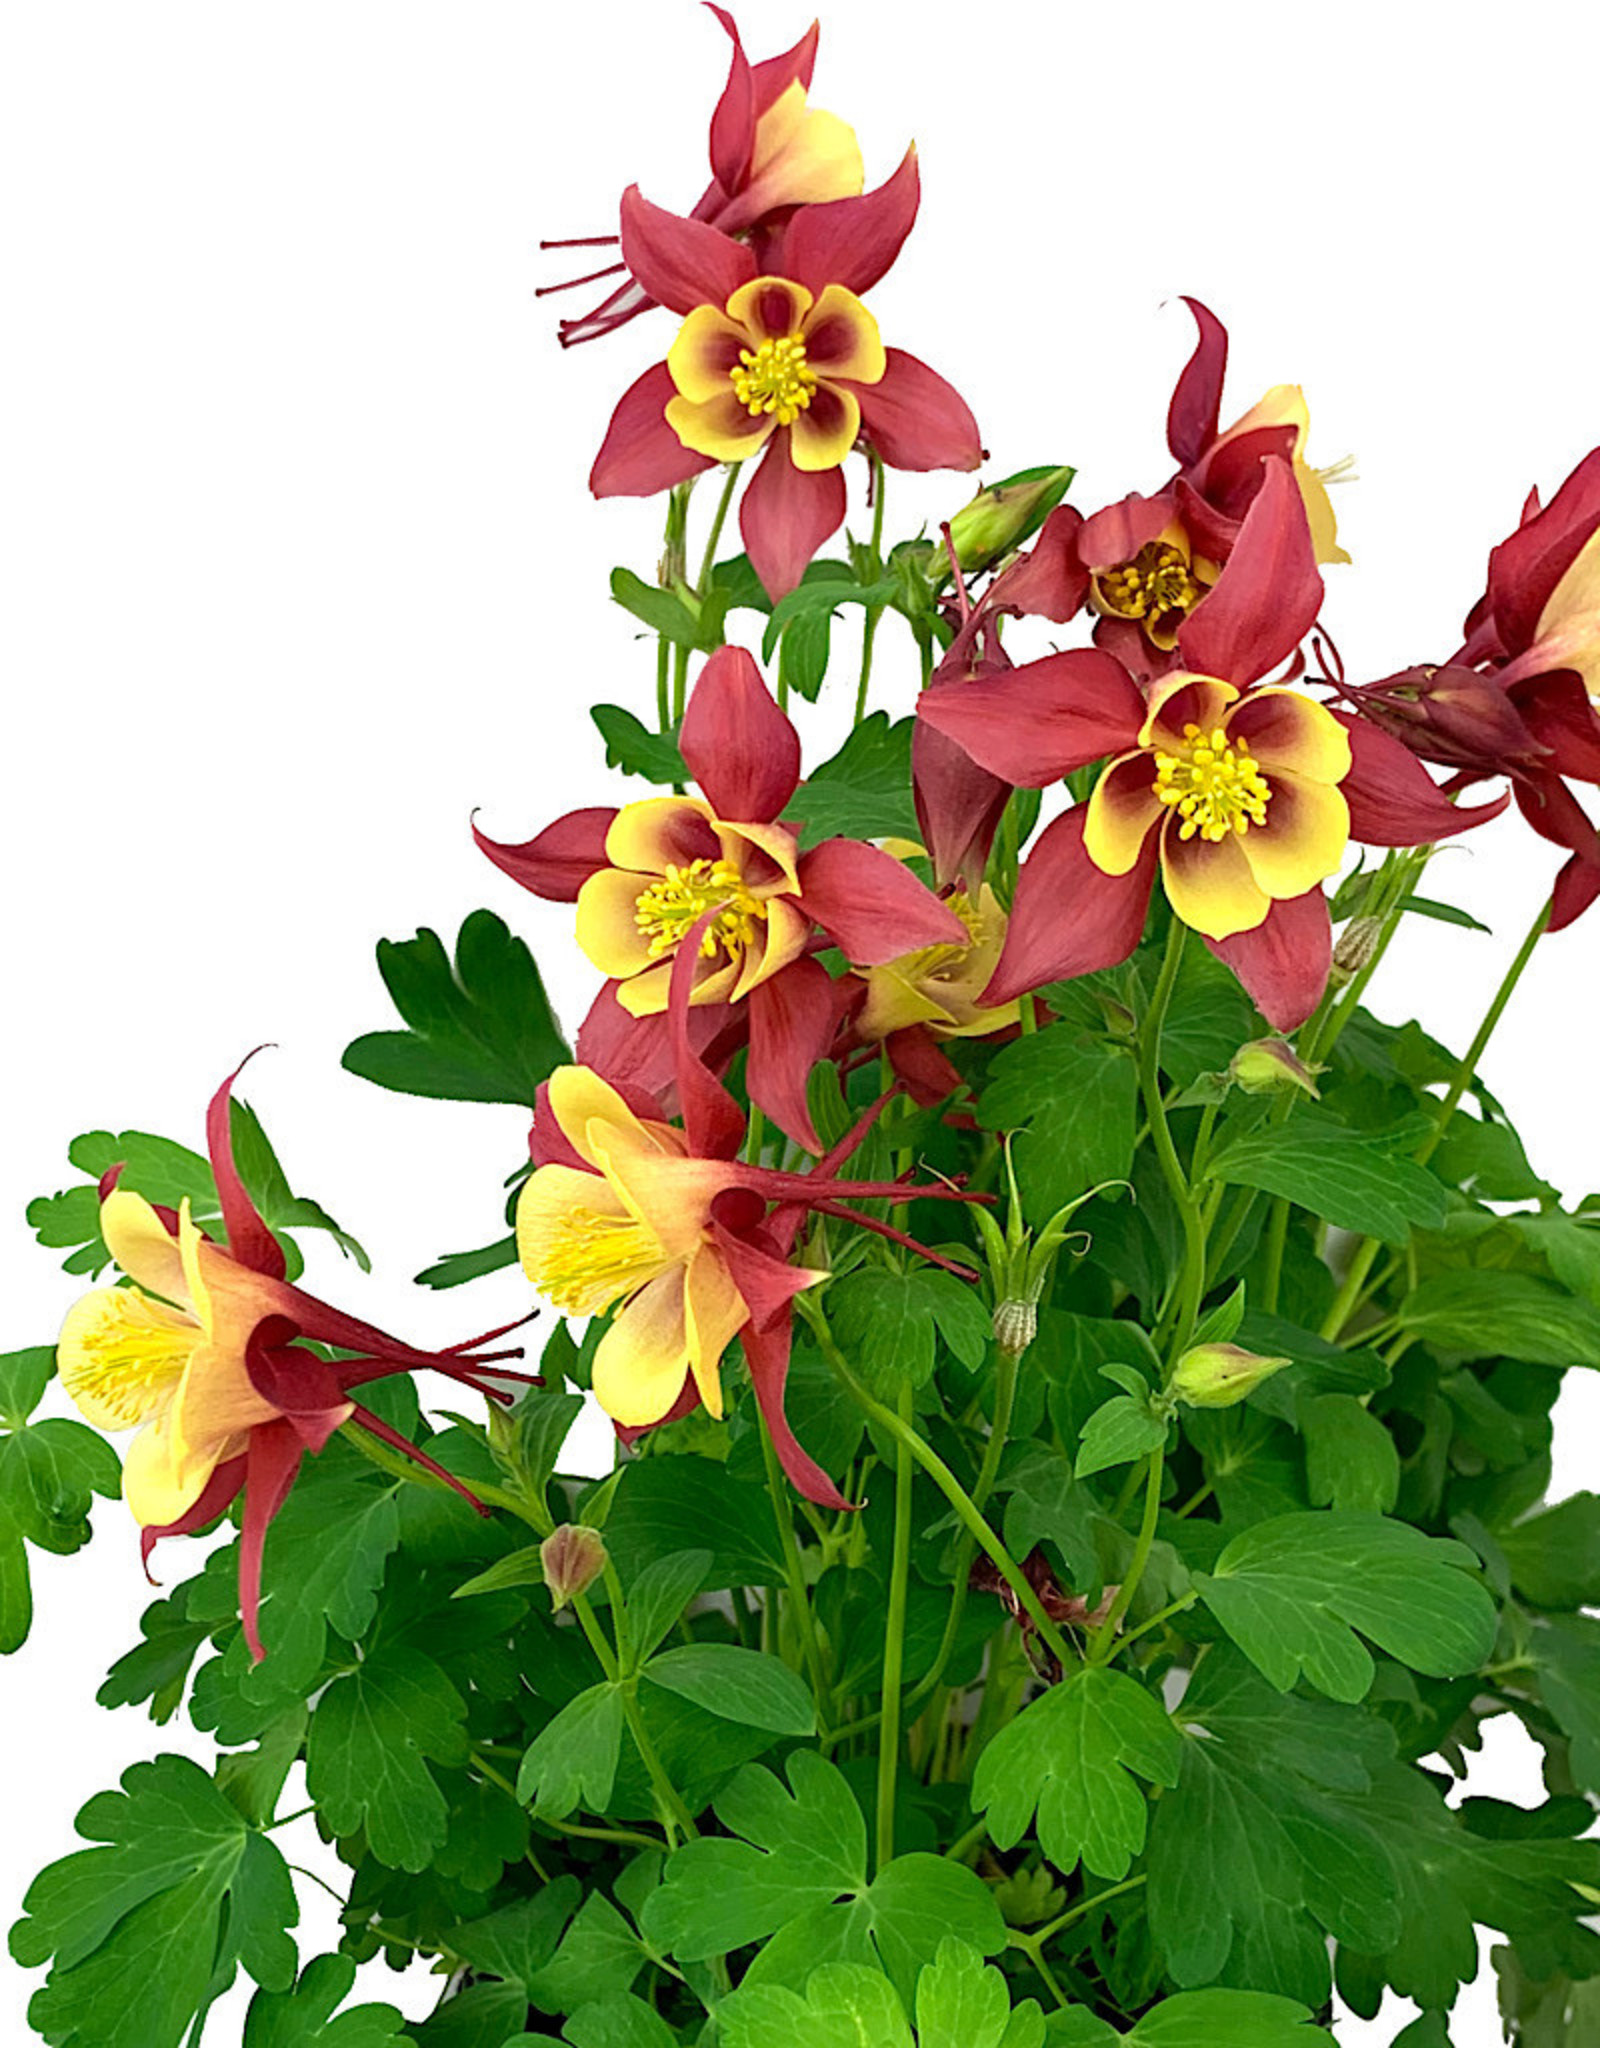 Aquilegia caerulea 'Early Bird Red/Yellow' 1 Gallon